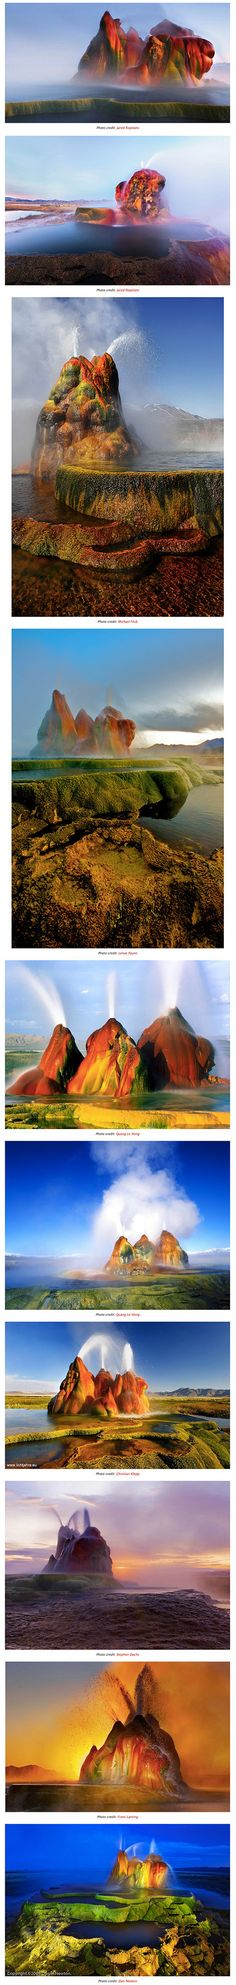 "Fly Geyser (or Fly Ranch Geyser) is a a small geothermal geyser that is located approximately 20 miles north of Gerlach, in Washoe County, Nevada. Called ""one of the most beautiful sights in Nevada,"" the geyser is a little-known tourist attraction even to Nevada residents."